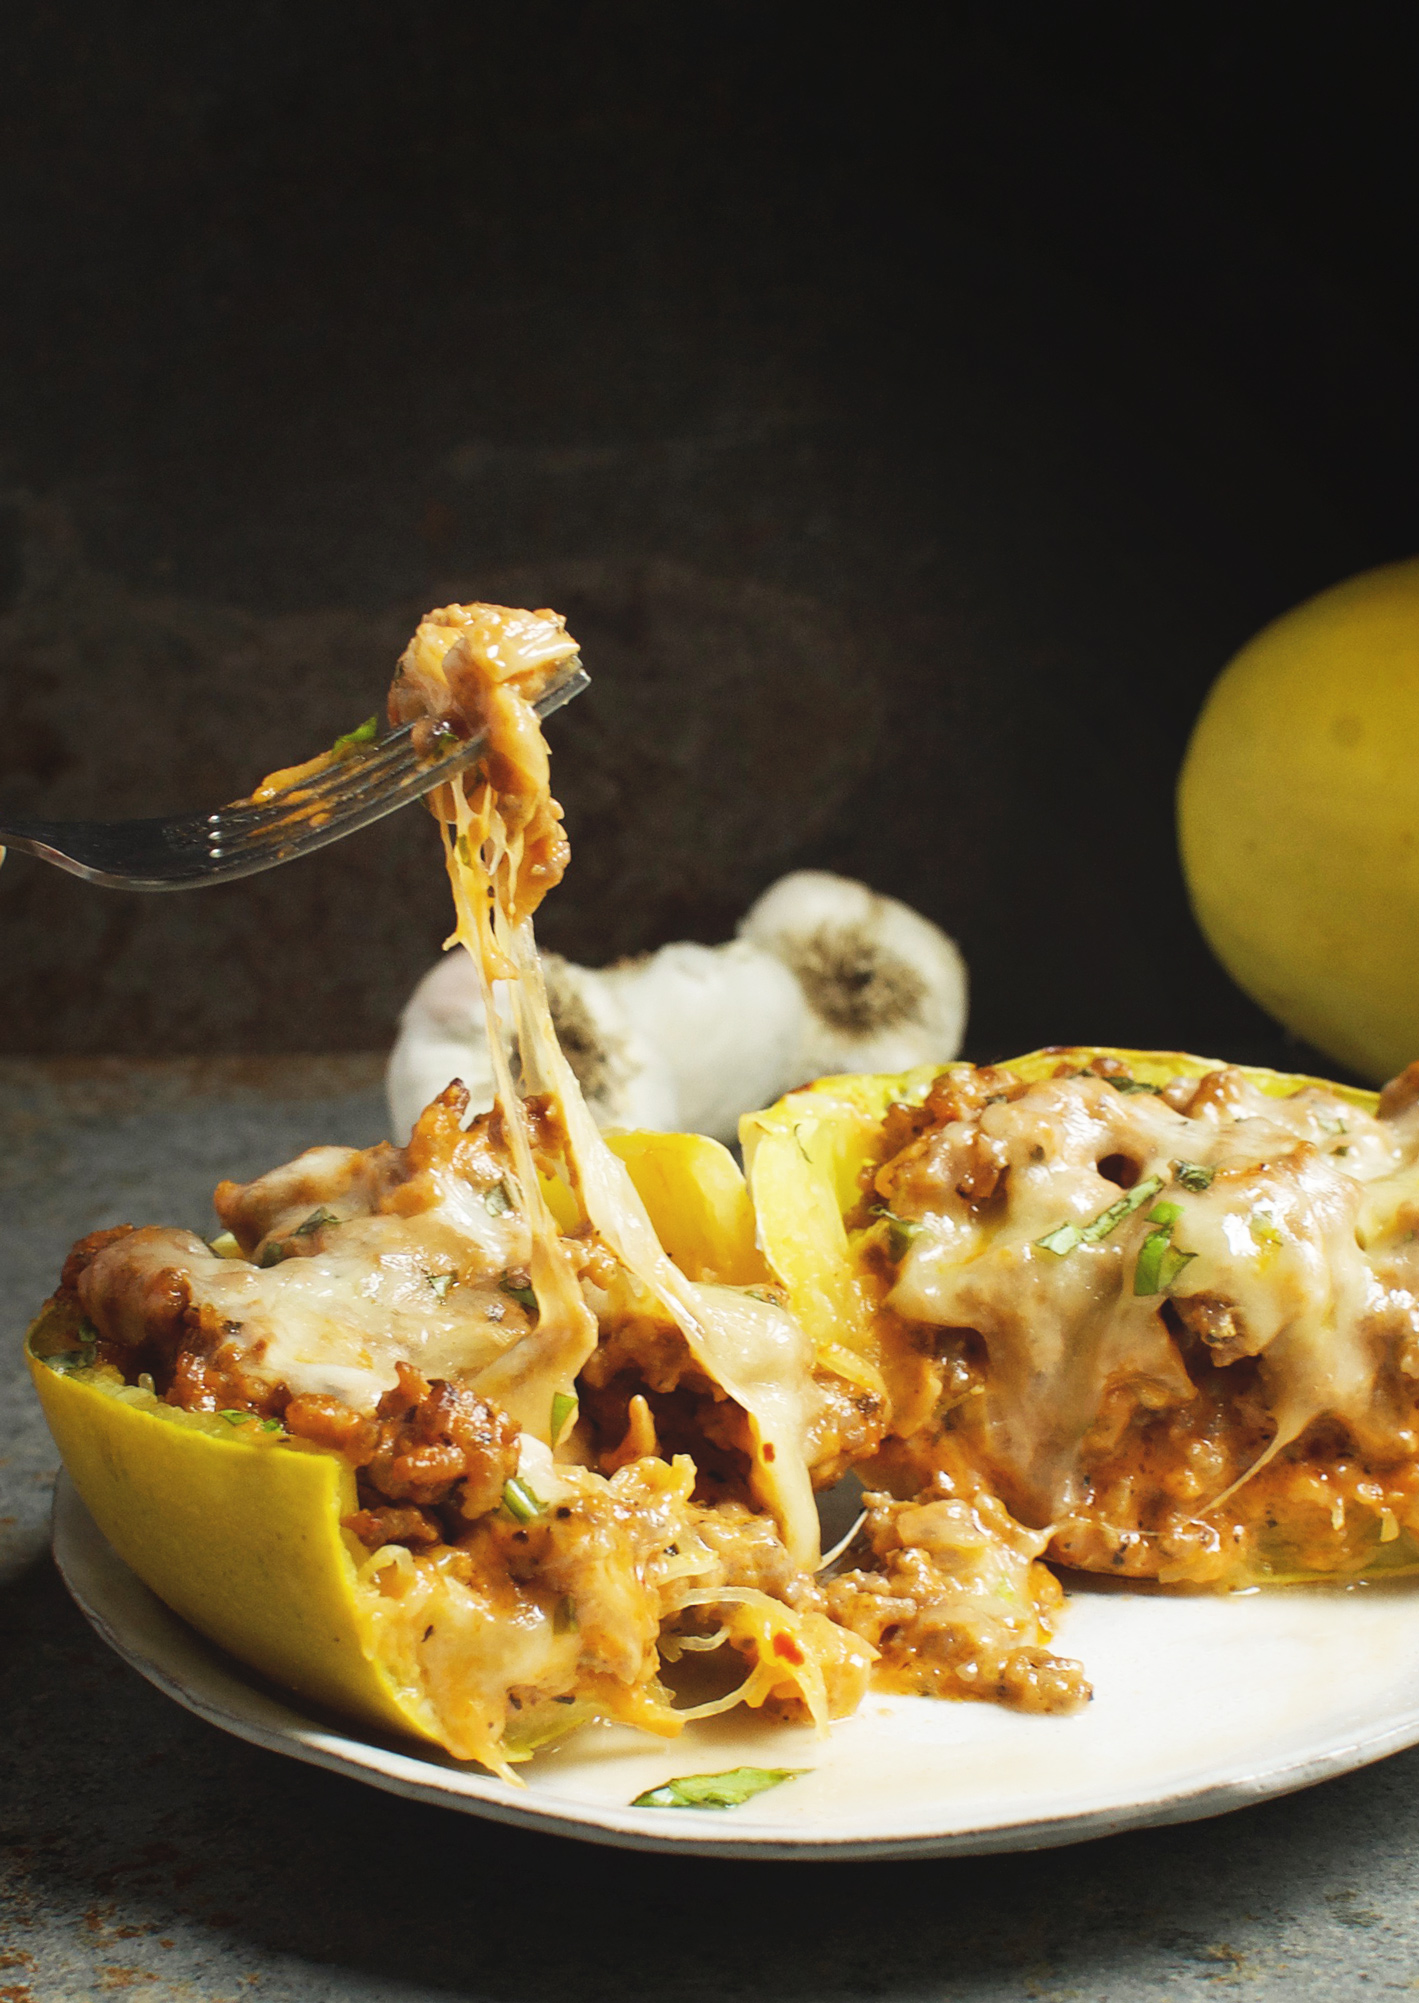 This recipe for Sausage Stuffed Spaghetti Squash takes low-carb eating to a new level! This delicious recipe works for low-carb, ketogenic, gluten-free, grain-free, diabetic, or Banting diets.